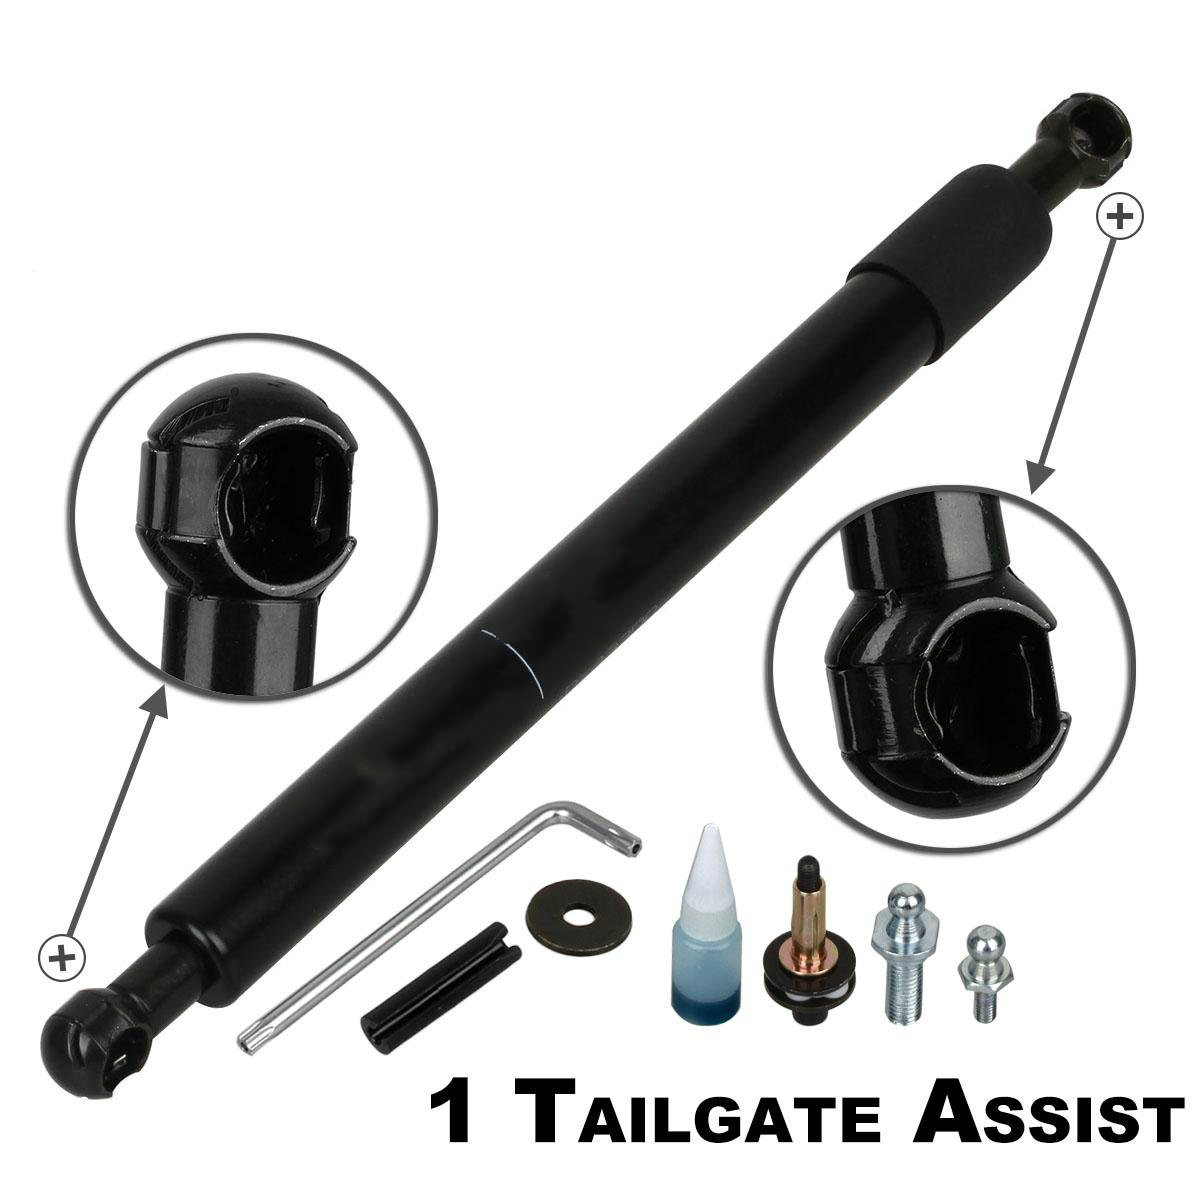 1pcs Tailgate Assist Shock Struts Lift Support for Dodge Ram 2500 3500  DZ43300 wired remote vibration realistic dildo swing strong double motor products penis adult sex toys women